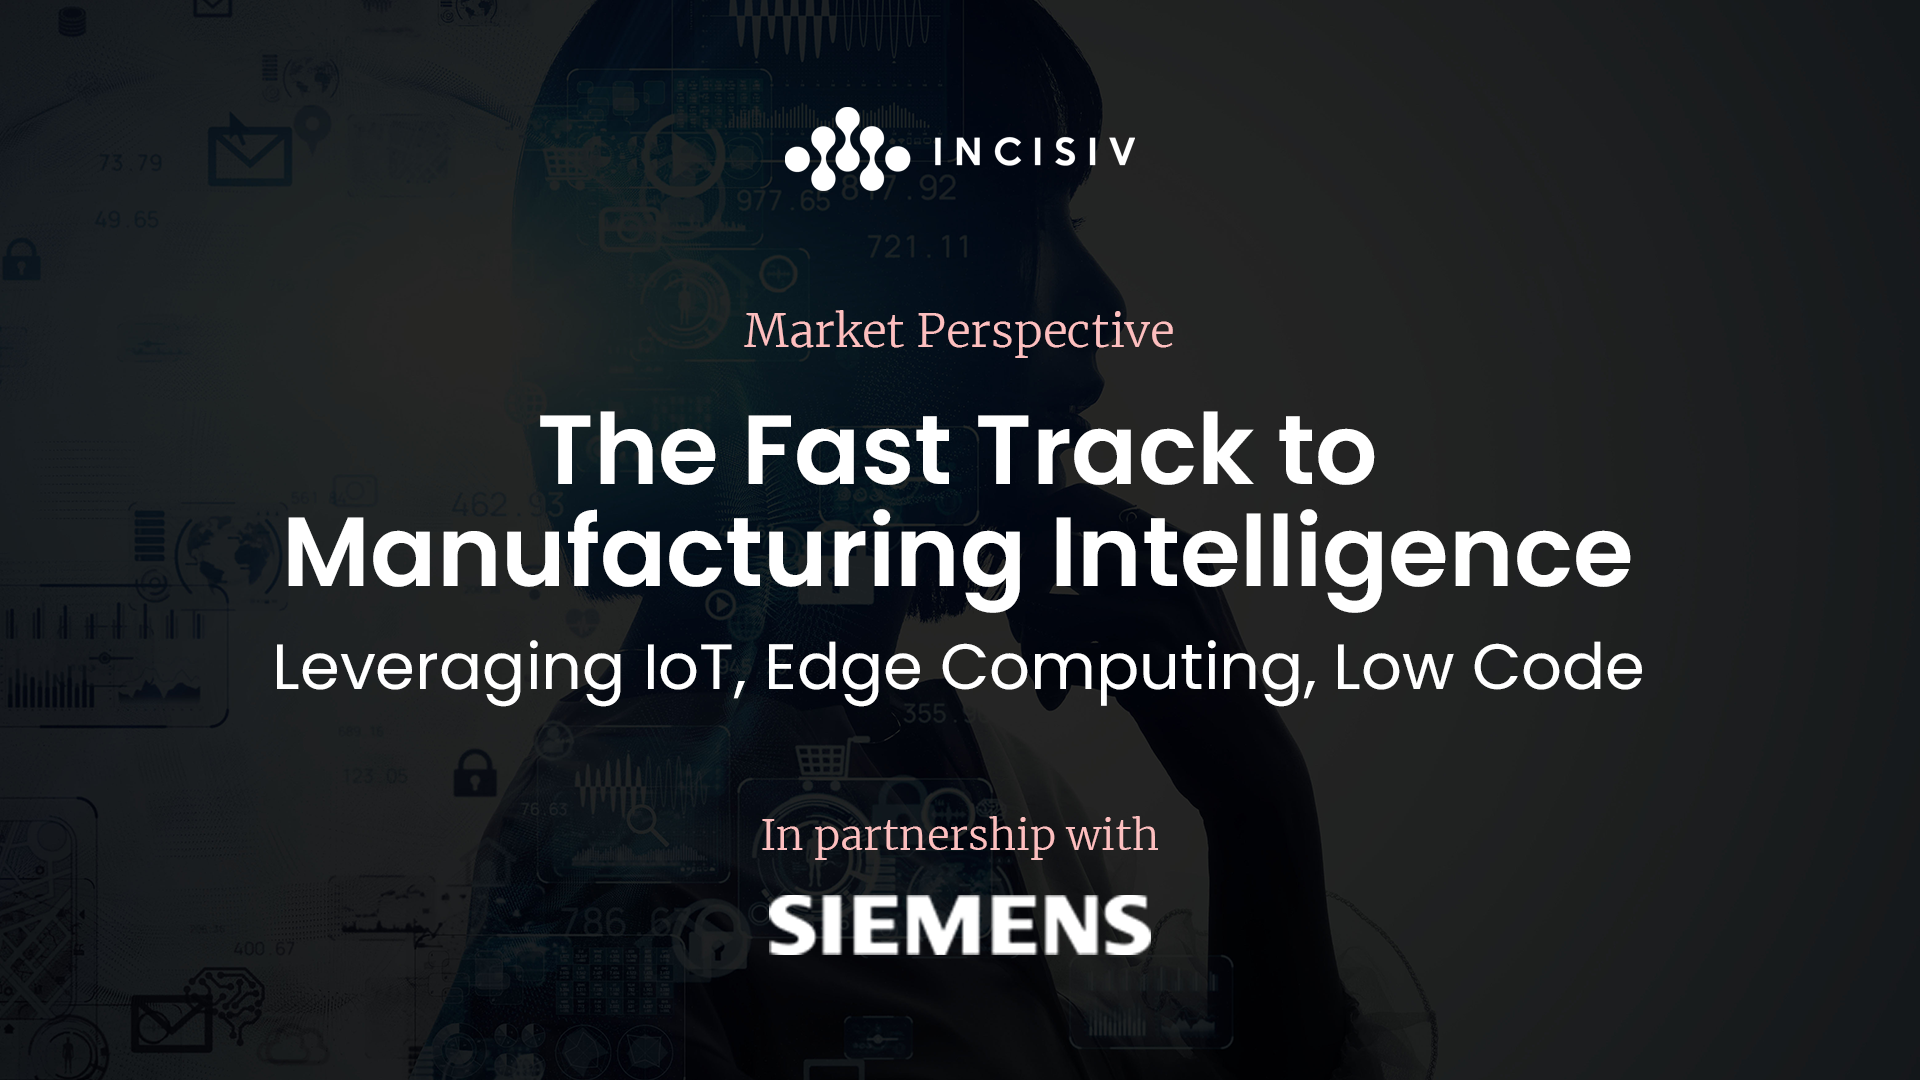 The Fast Track to Manufacturing Intelligence